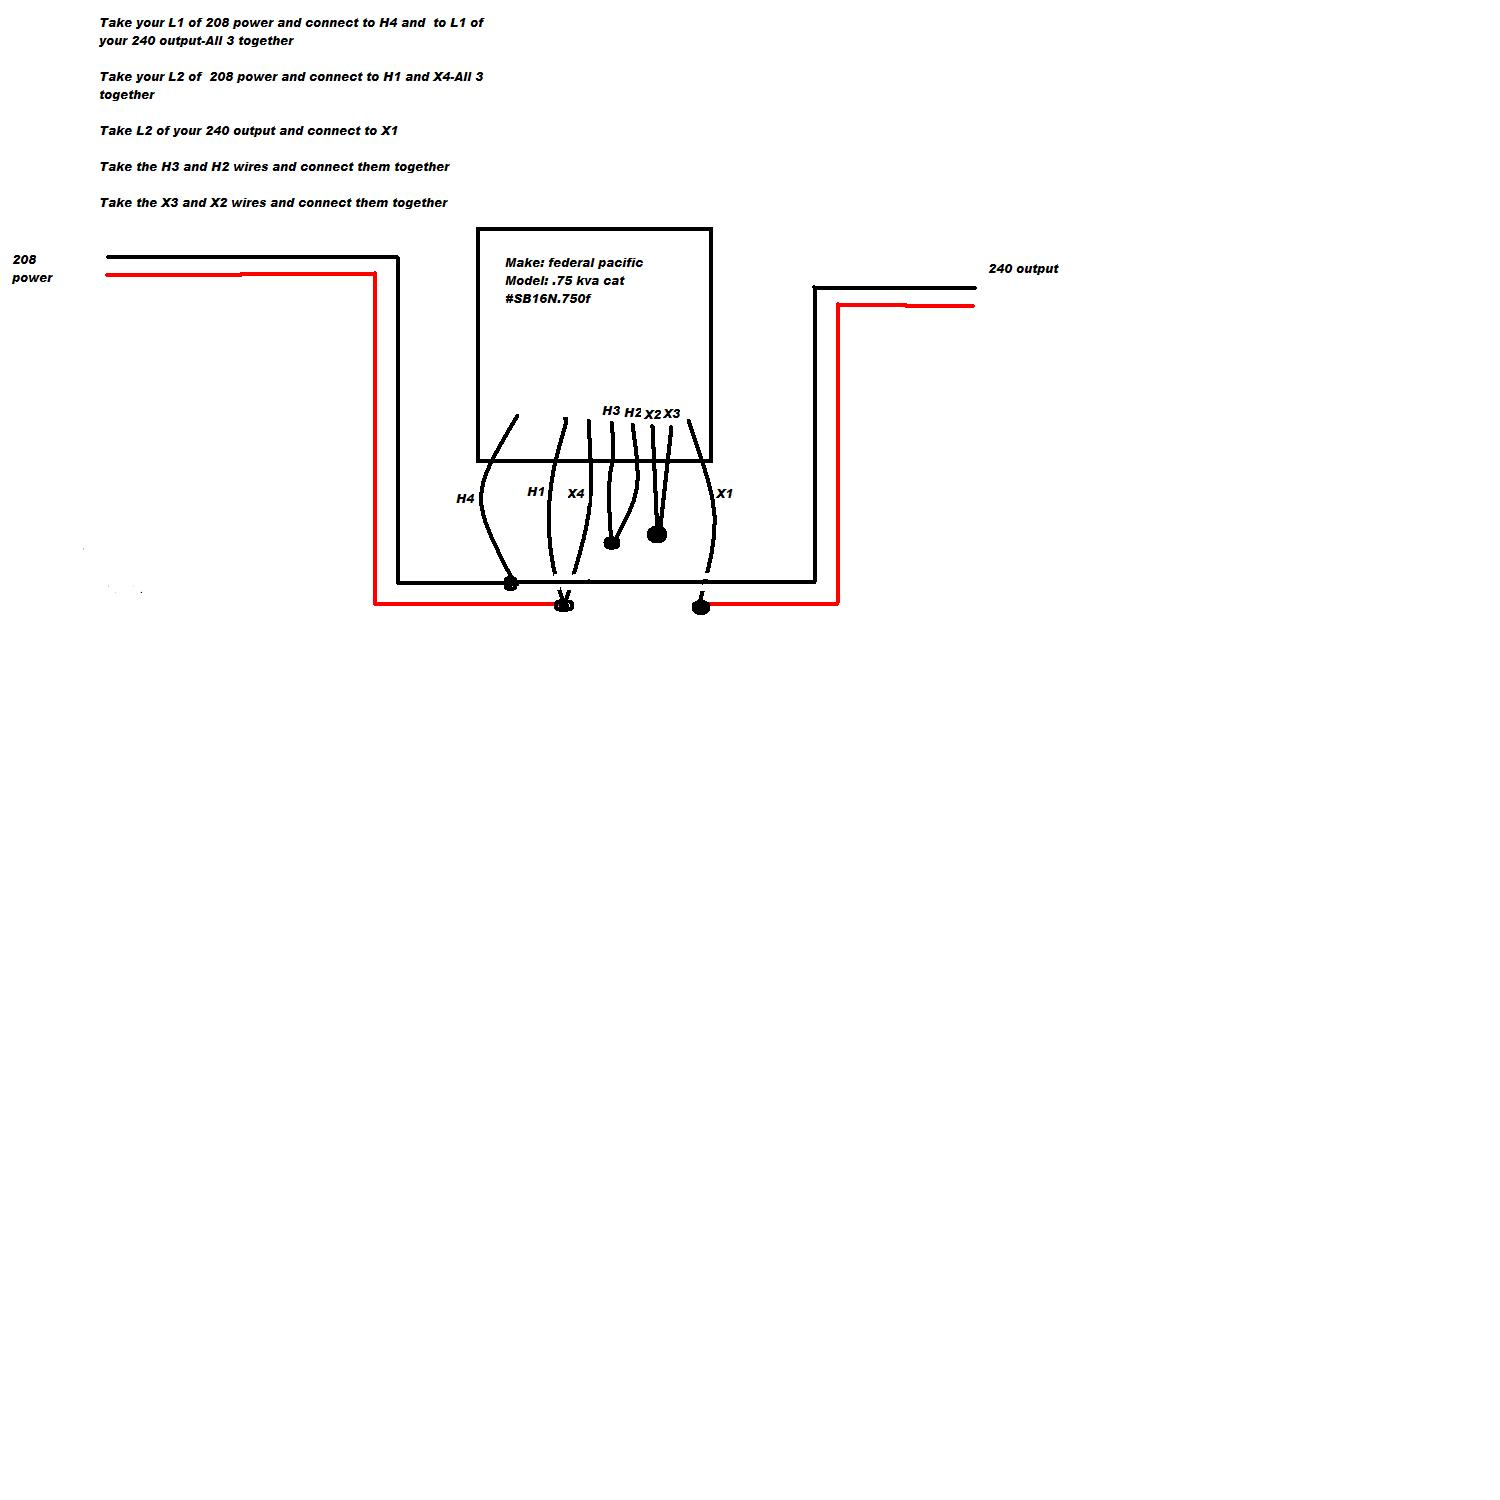 federal pacific buck boost transformer wiring diagram Collection-Federal Pacific Transformer Wiring Diagram Example Electrical 18-s